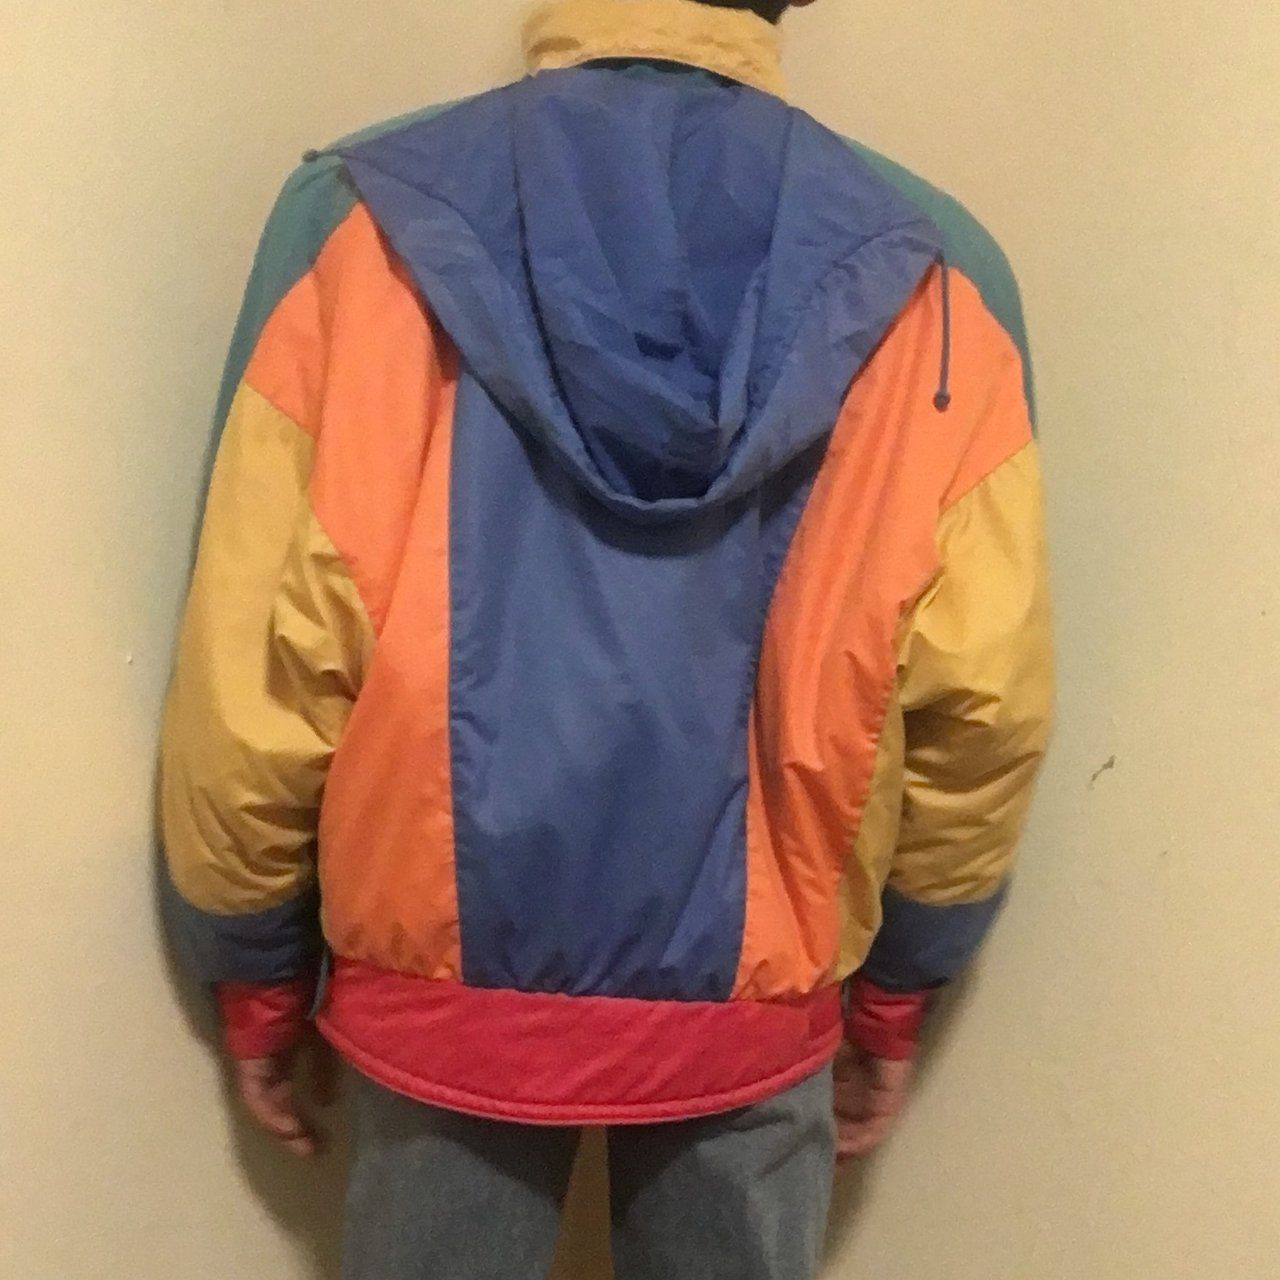 aaca183d9 Amazing colorblock puffy coat. This 80s 90s jacket has the a - Depop